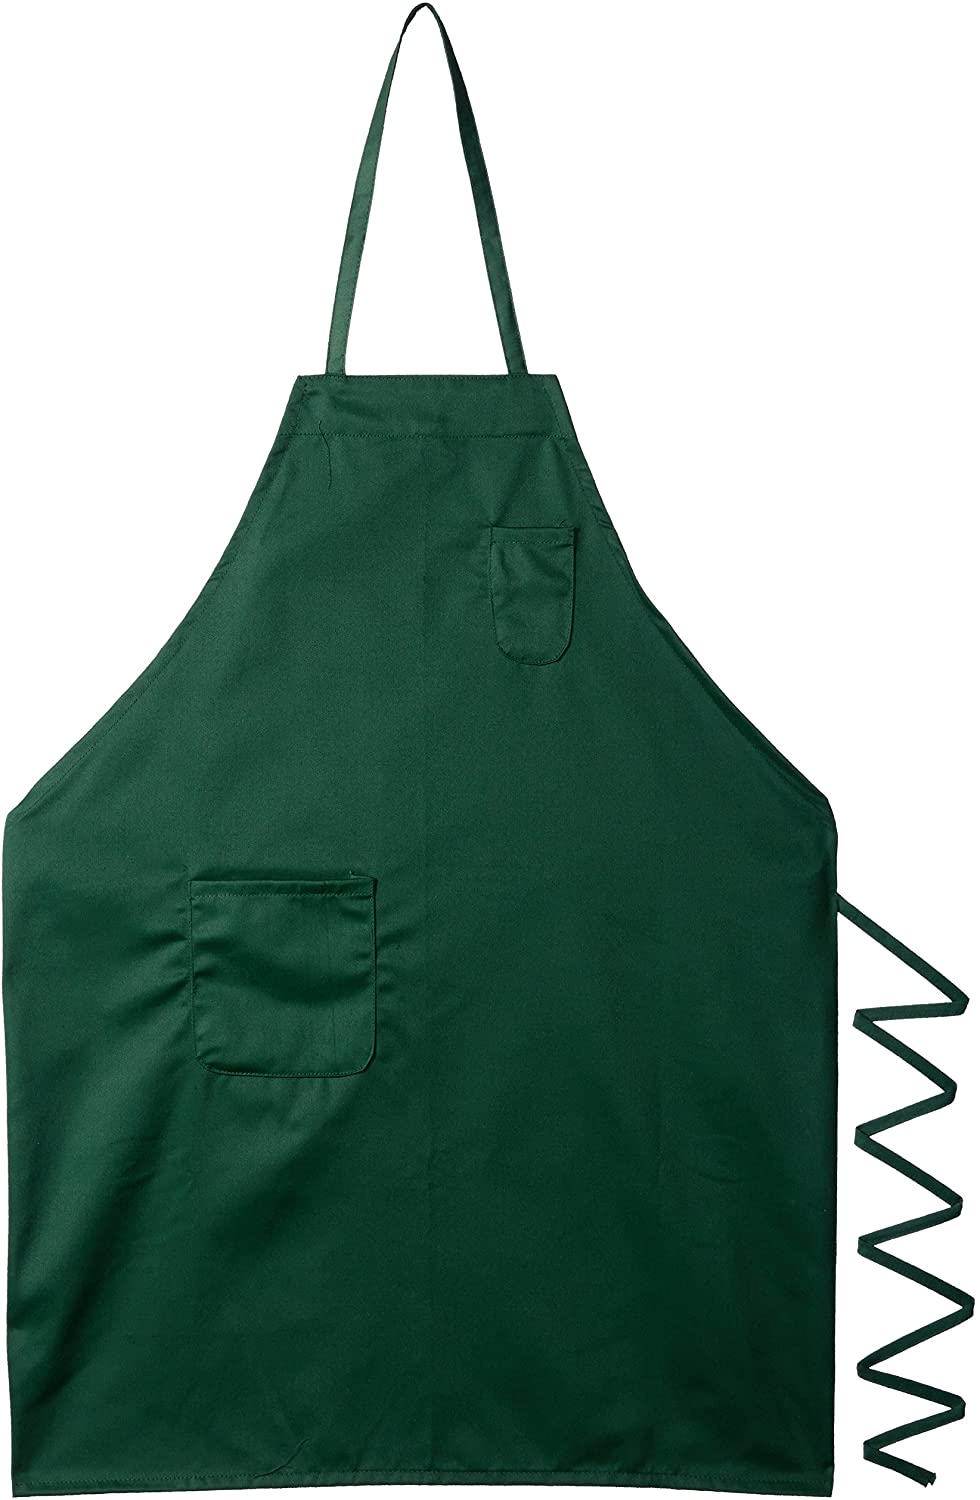 Winco BA-PGN Full Length Bib Apron with Pocket, Green